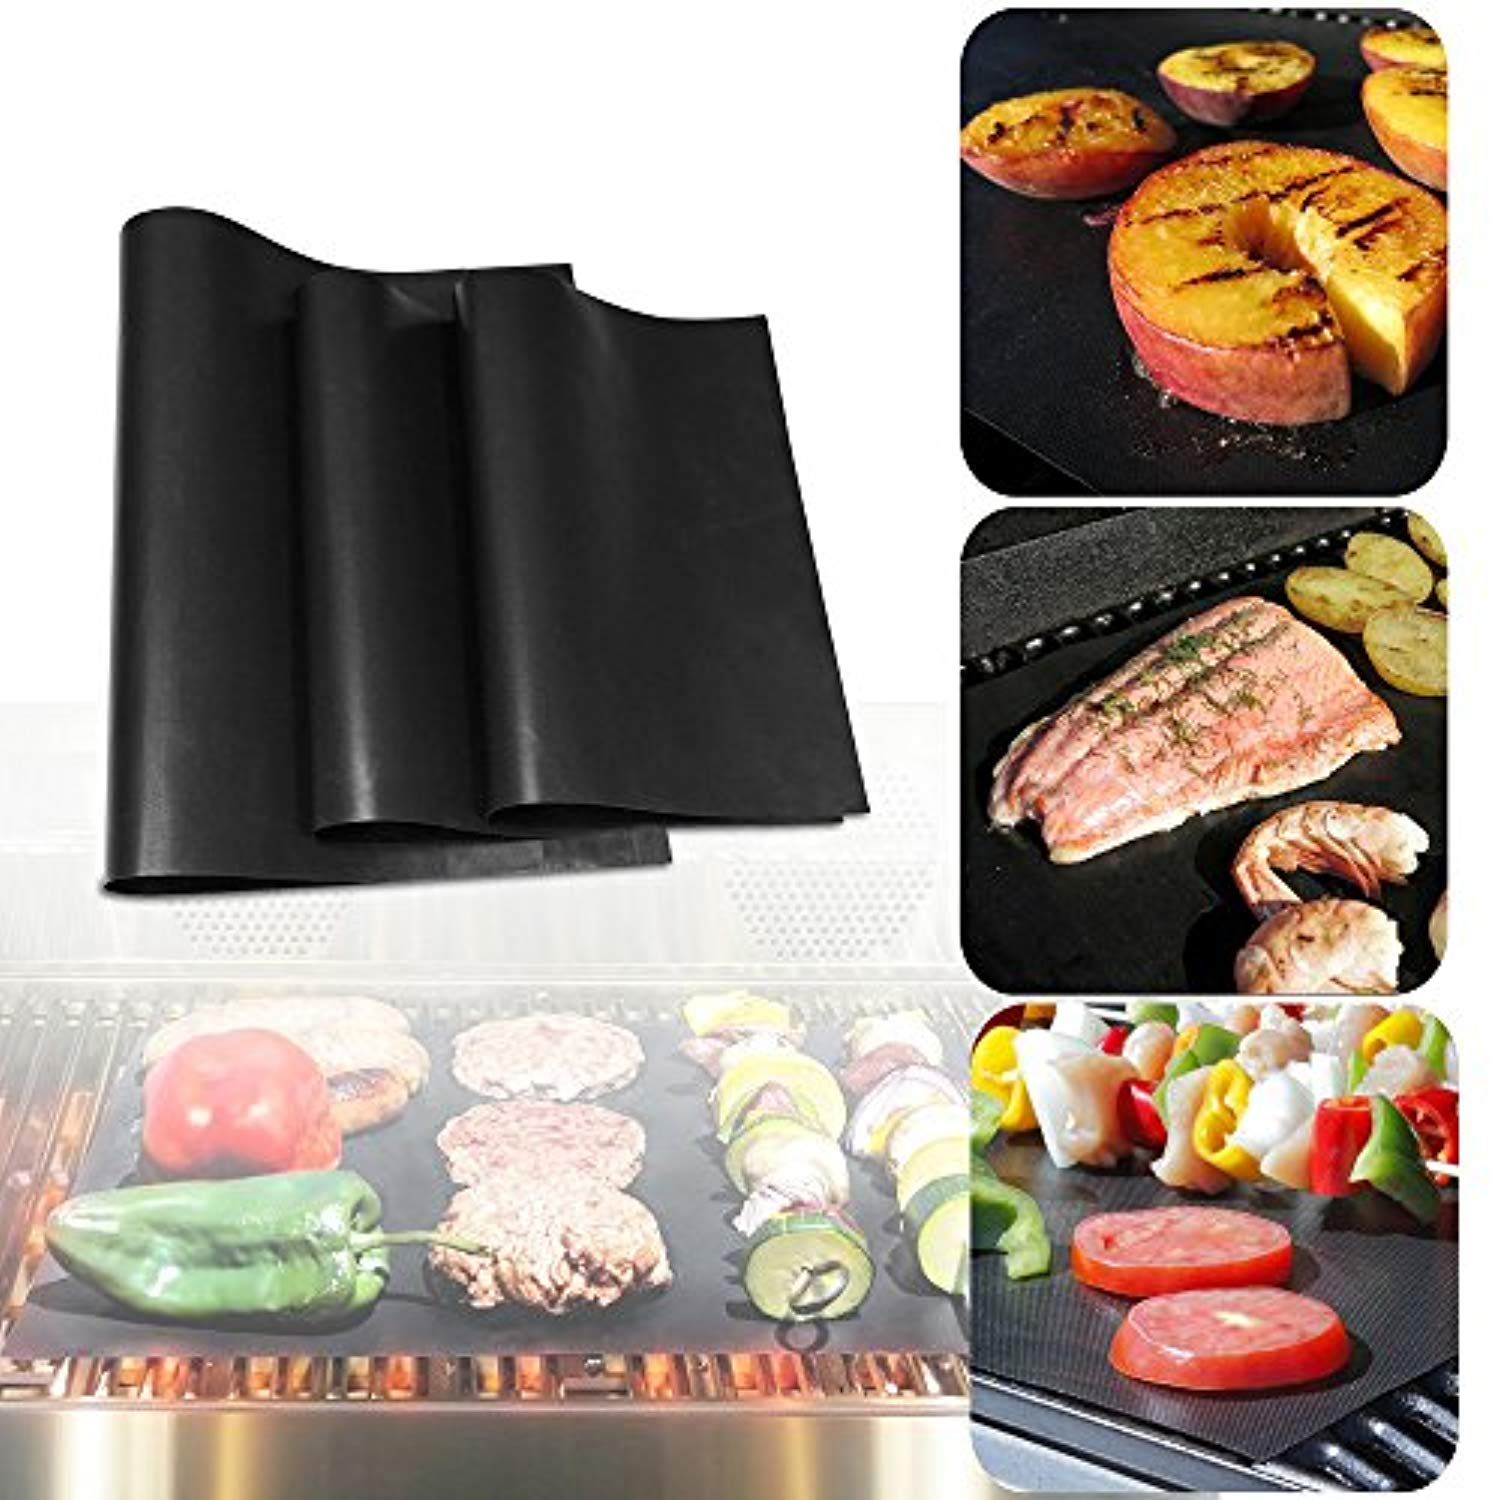 "Ankway Non Stick Grilling Mats, (Set of 3) Non Stick Grill Mats Reusable Heavy Duty BBQ Grilling Mats for Gas, Charcoal, Electric Grill (1pcs 20"" X 16"", 2pcs 16"" X 13"")"